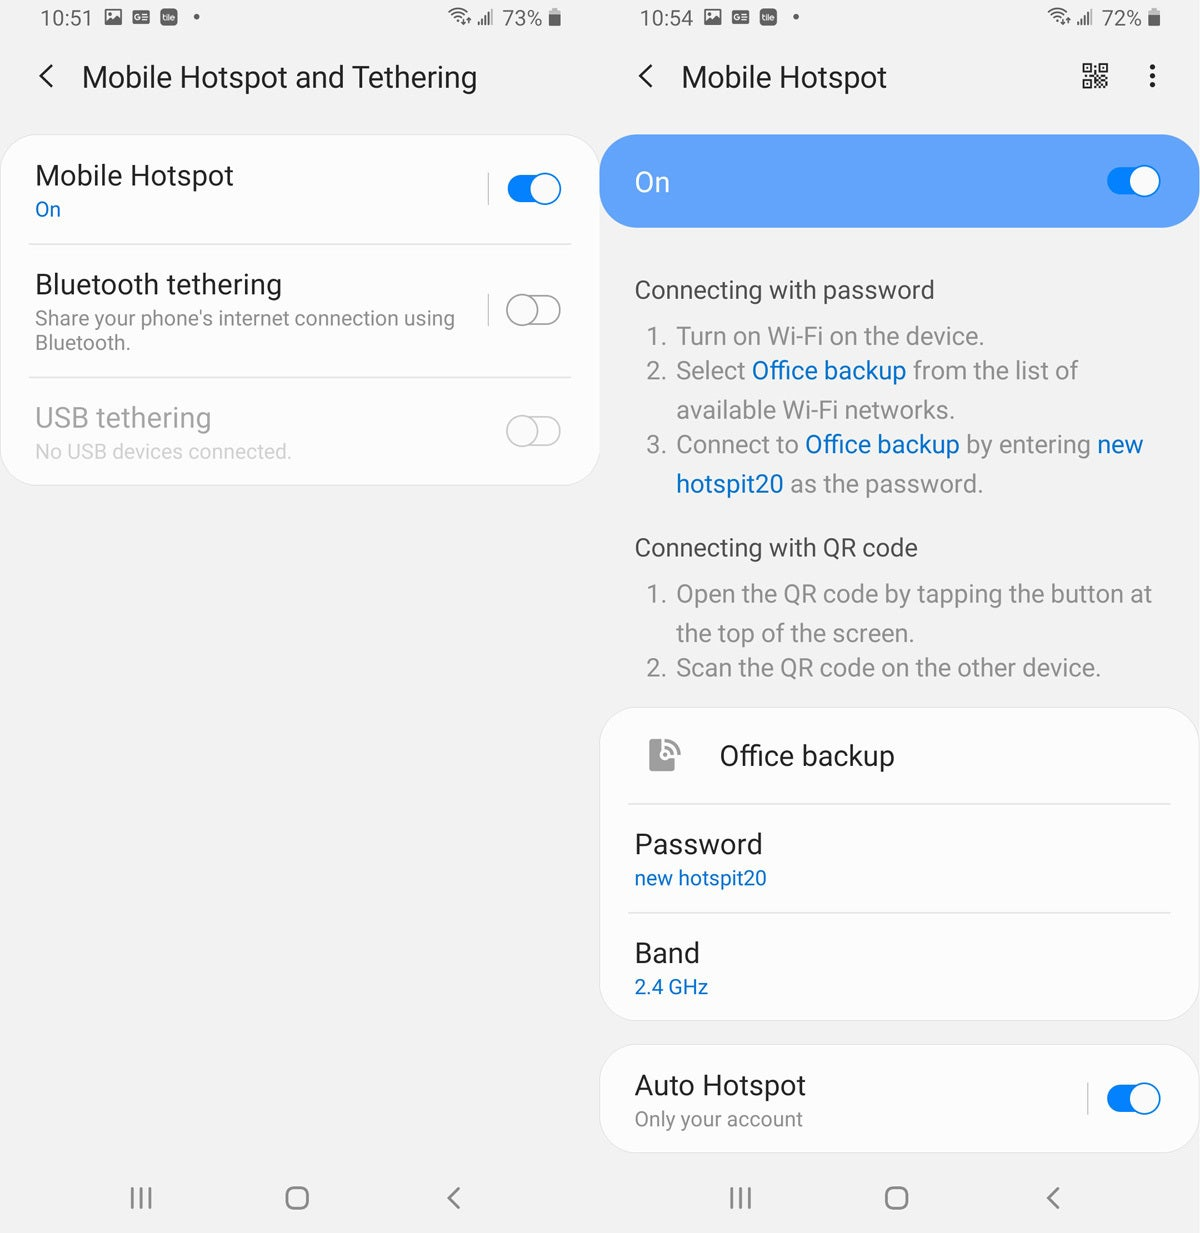 How to use a smartphone as a mobile hotspot